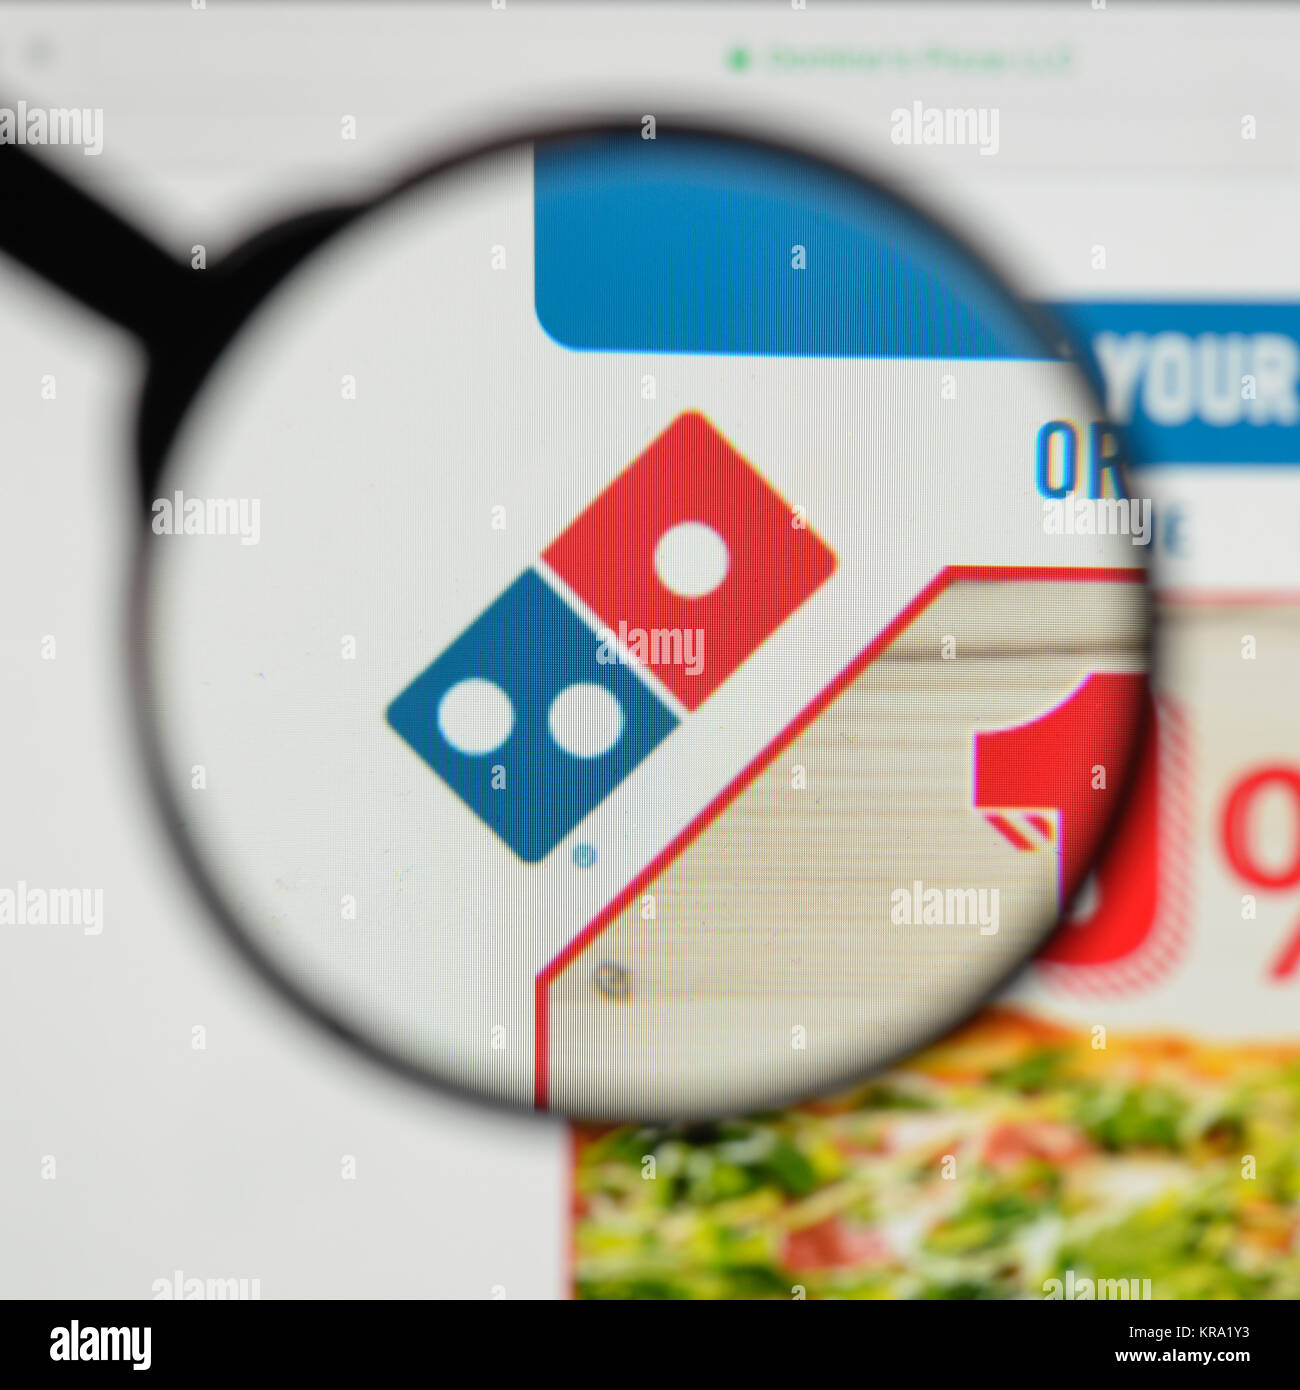 Dominos Pizza Logo Stock Photos & Dominos Pizza Logo Stock Images ...